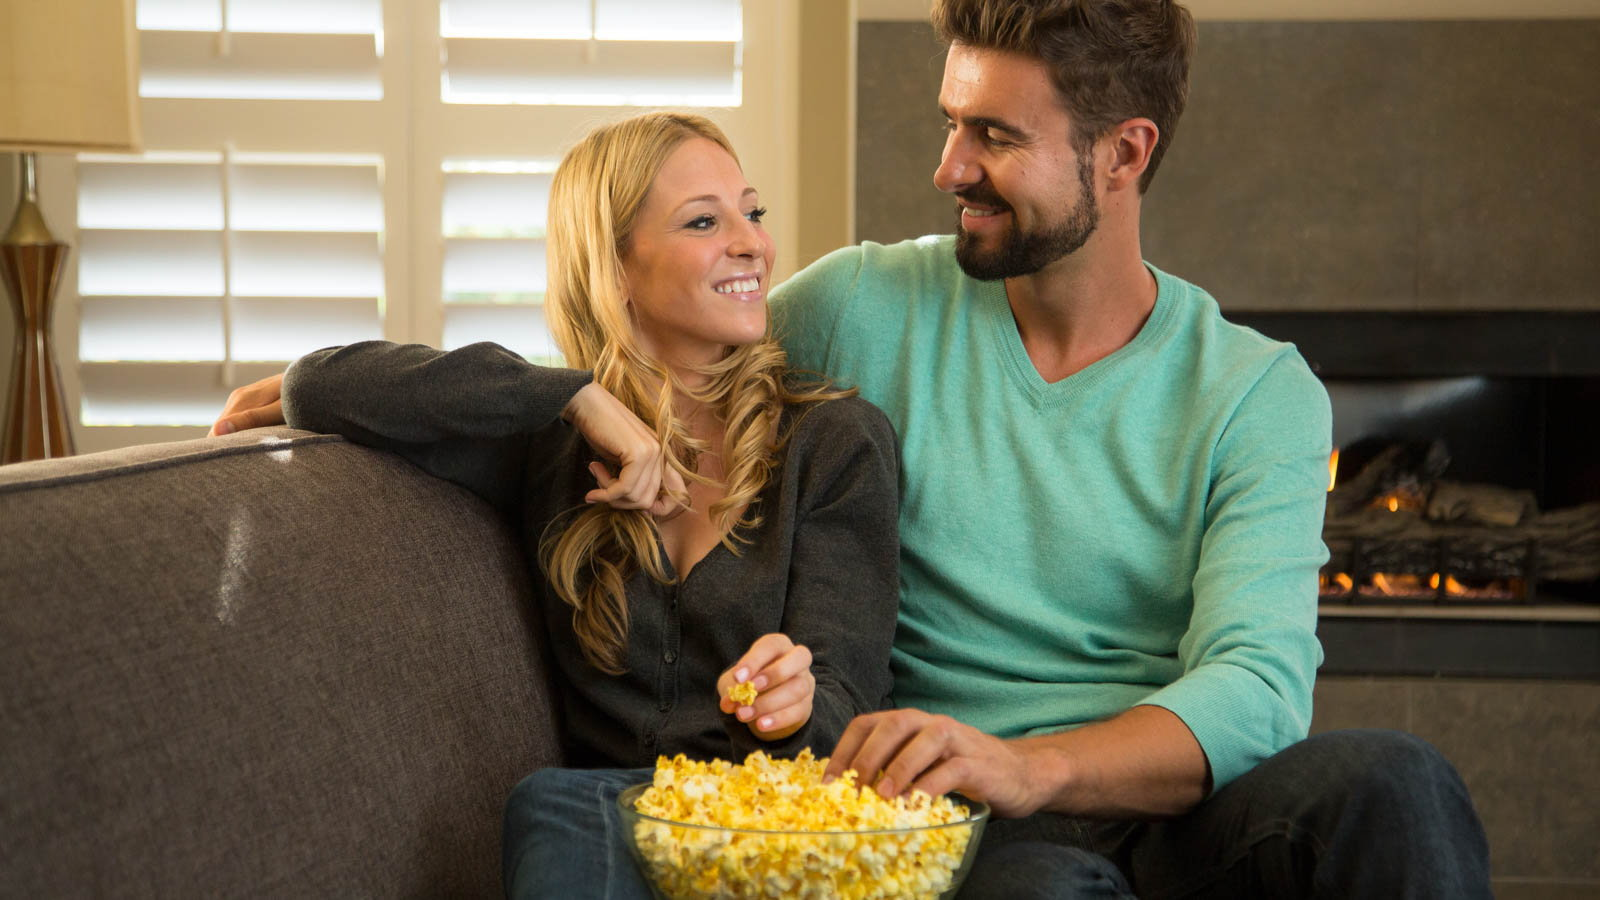 couple eating popcorn on the couch